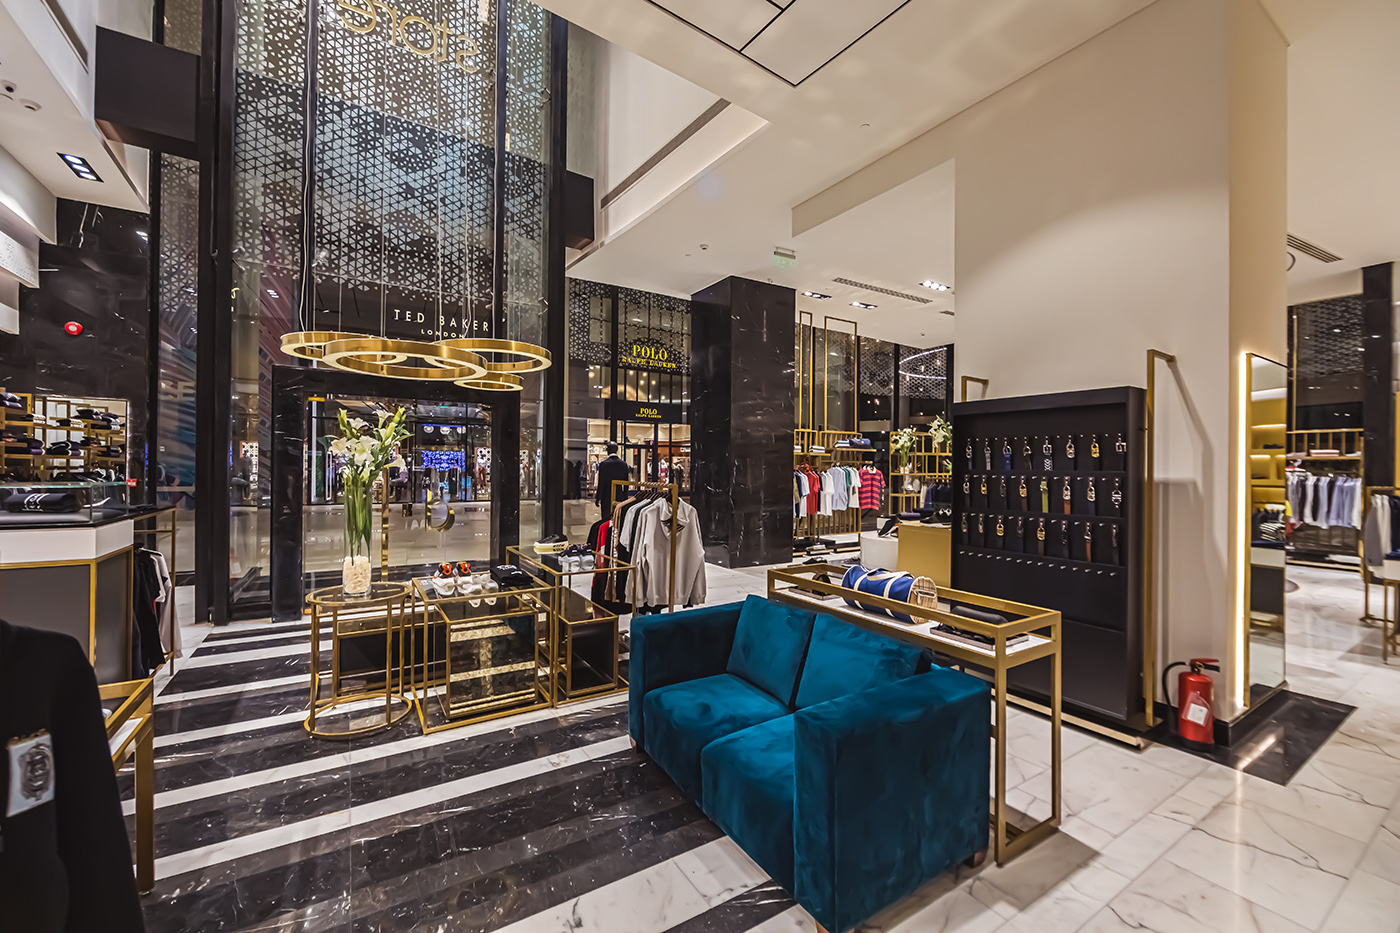 dstoreis a luxury multi-brand fashion store by Nile Projects